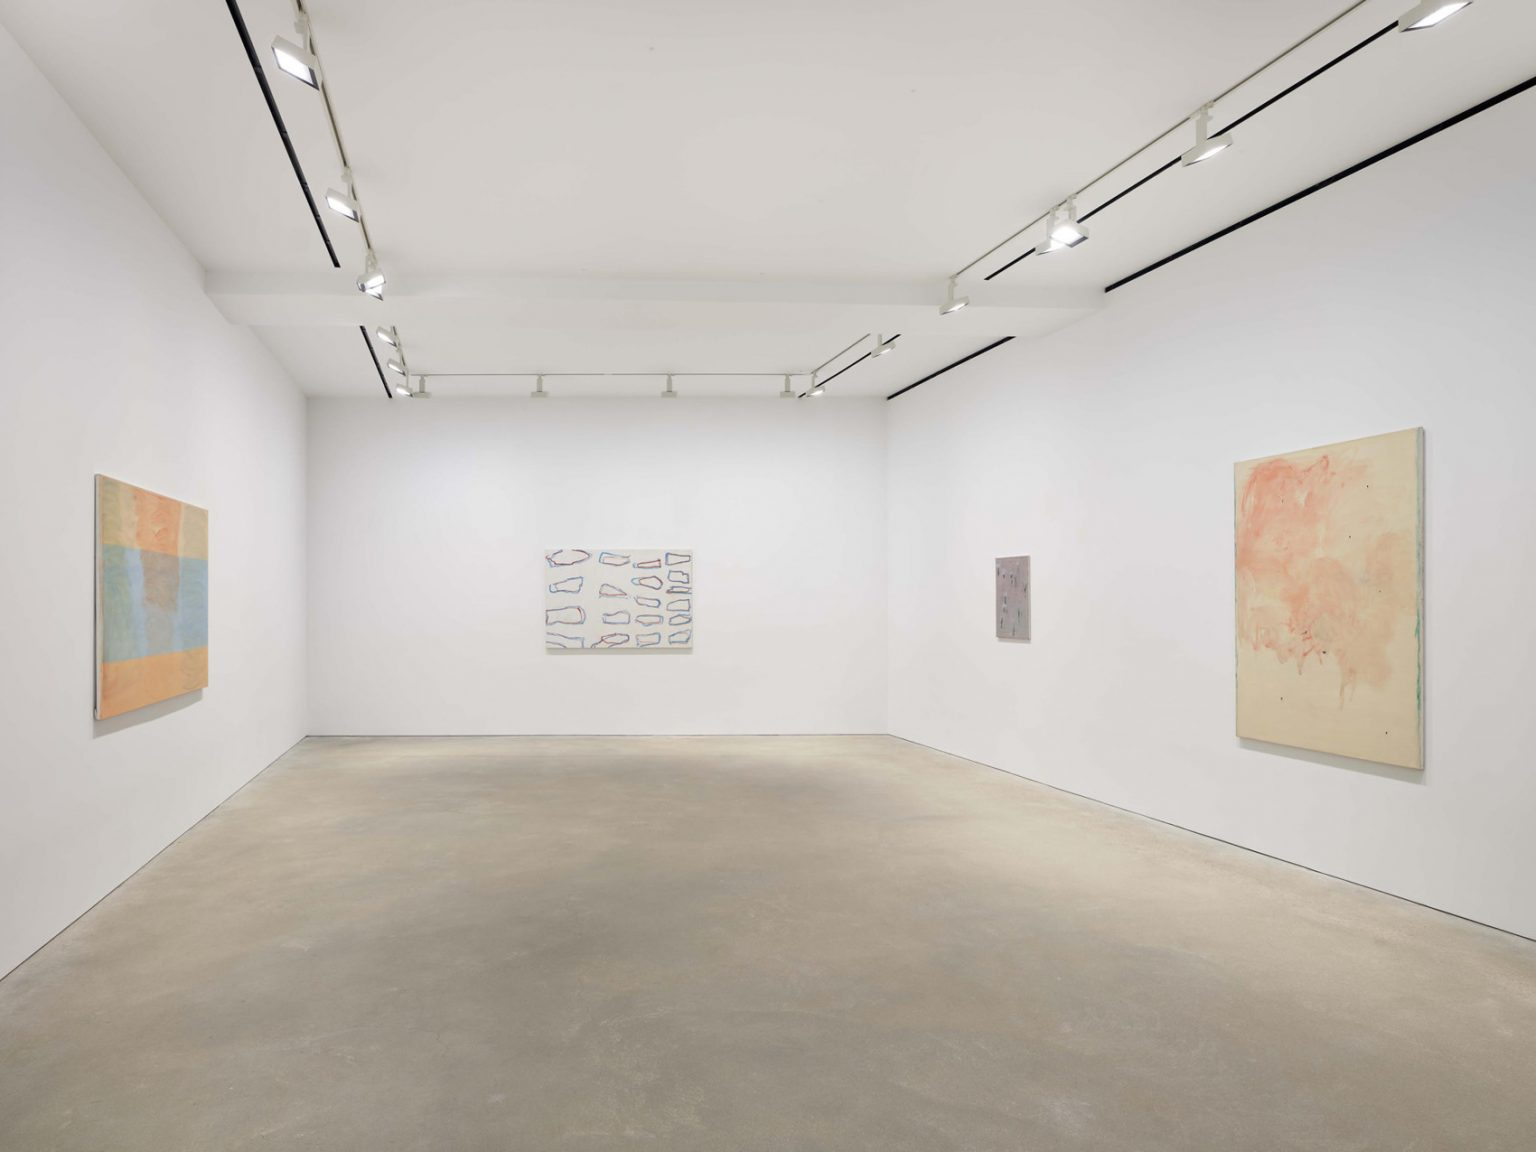 Installation view, Raoul De Keyser, David Zeirner, Hong Kong, 2021